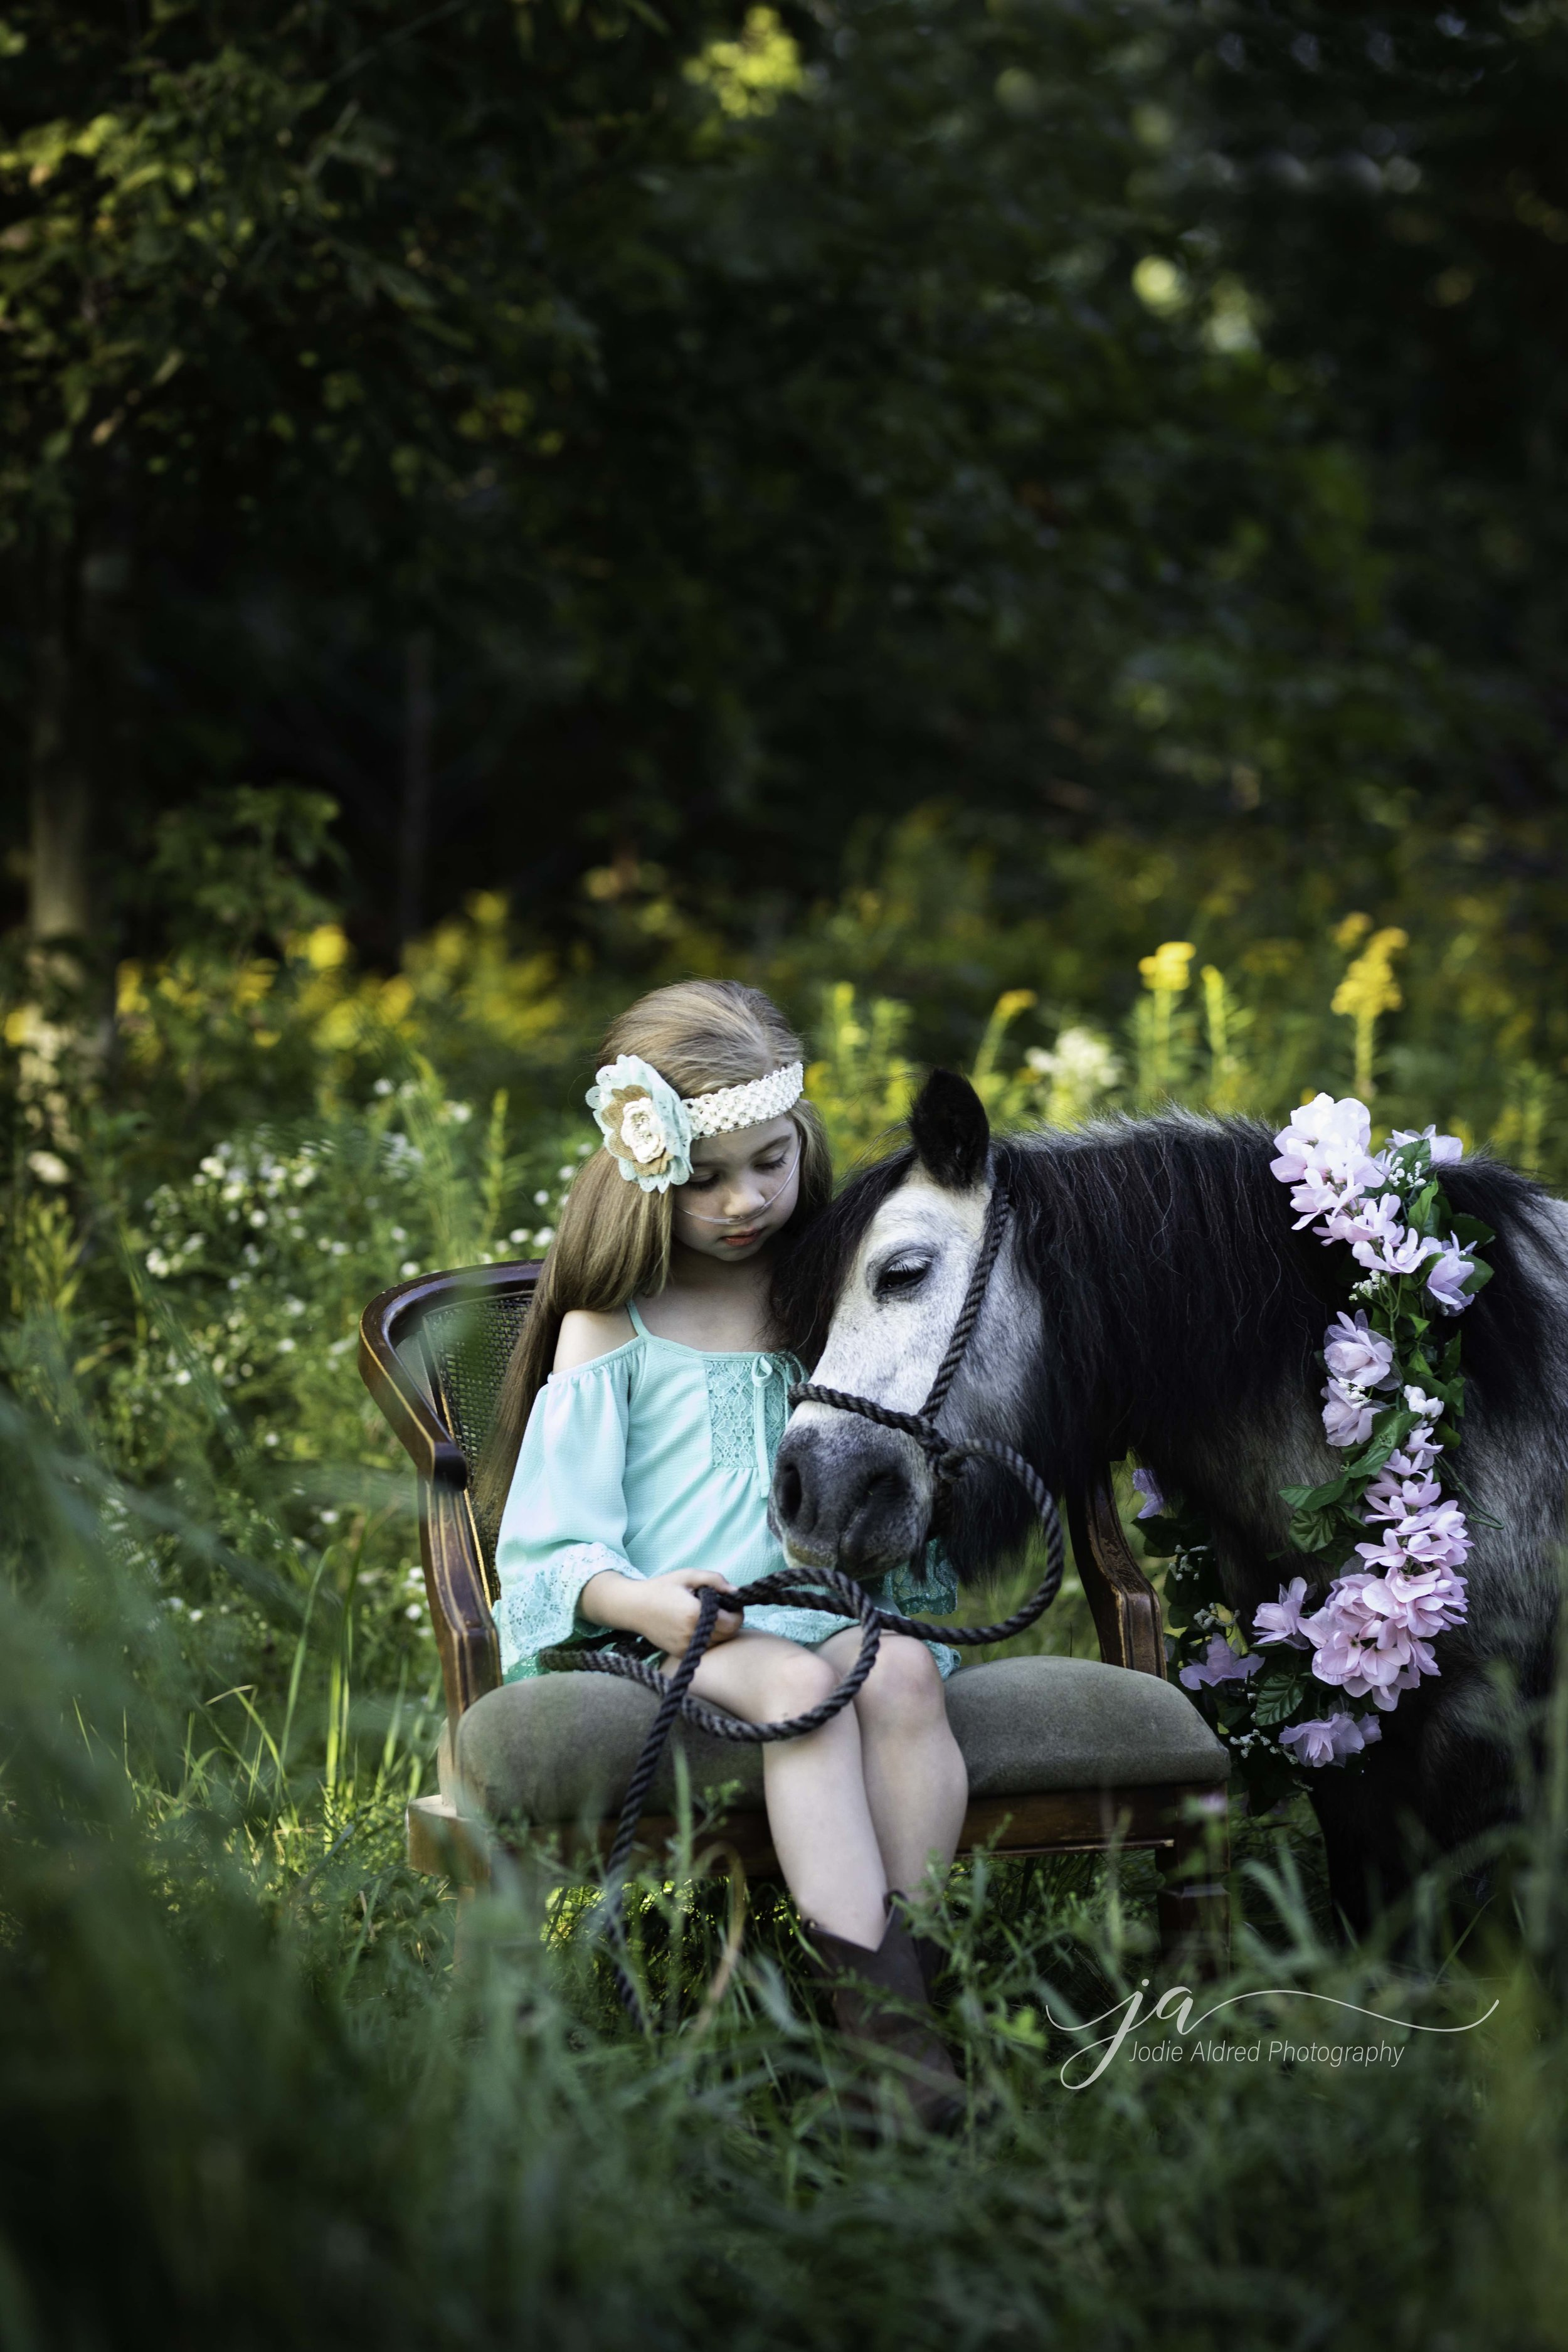 Jodie-Aldred-Photography-Chatham-Kent-Elgin-Middlesex-London-Ontario-Farm-Family-horse.jpg